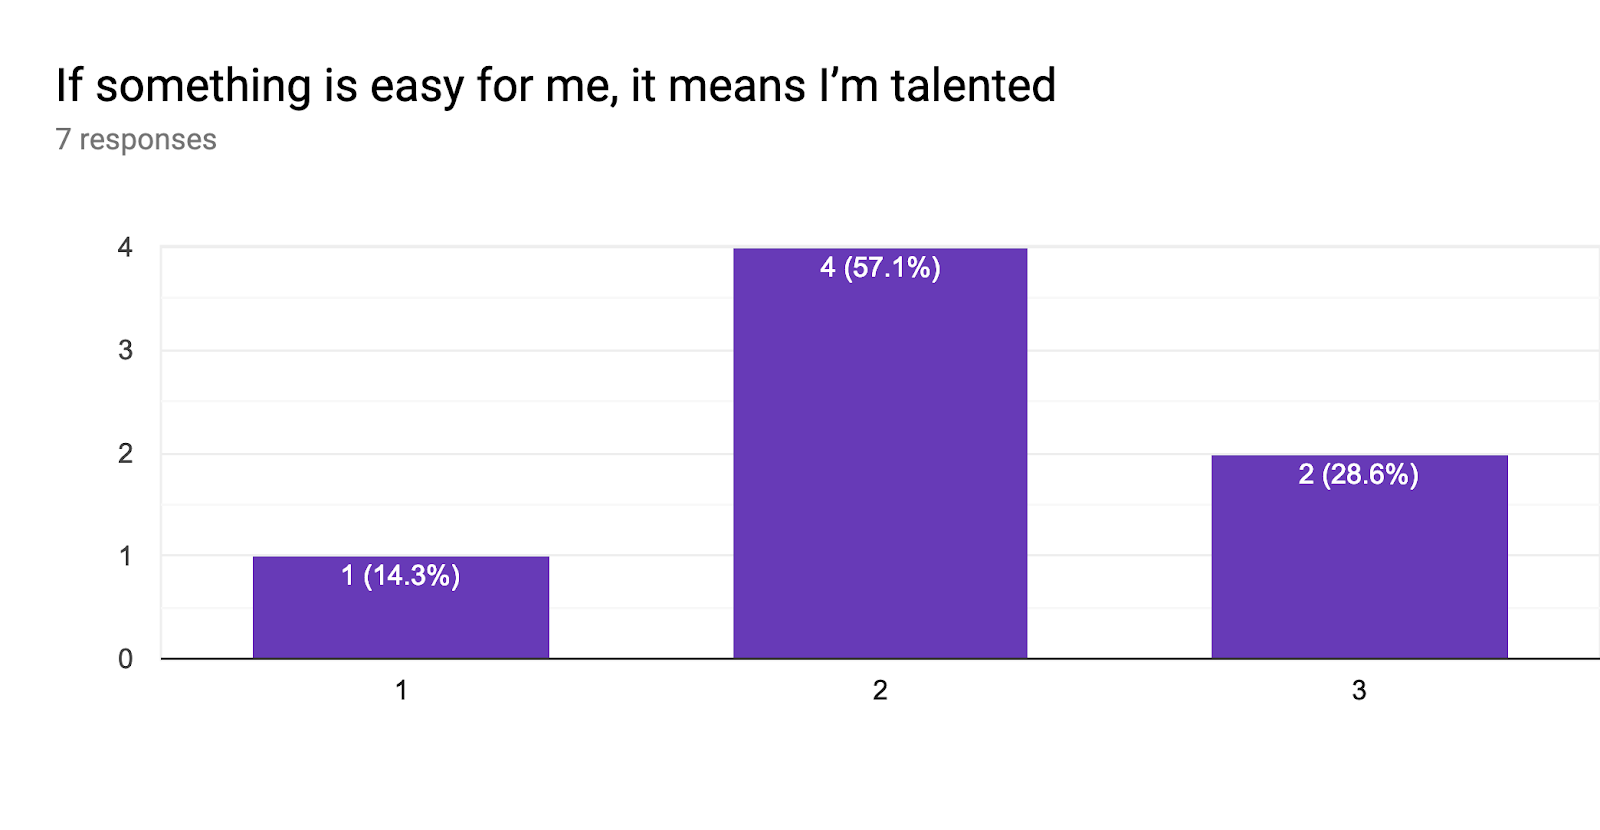 Forms response chart. Question title: If something is easy for me, it means I'm talented. Number of responses: 7 responses.